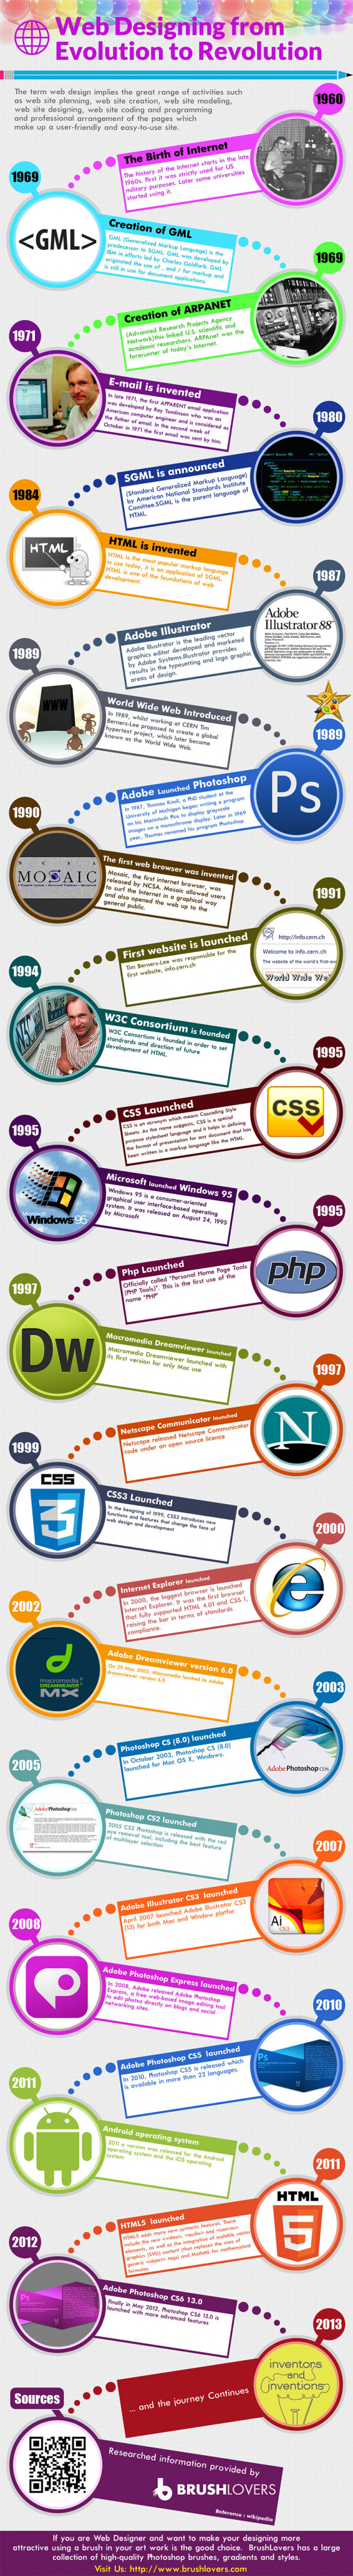 Web Designing from Evolution to Revolution